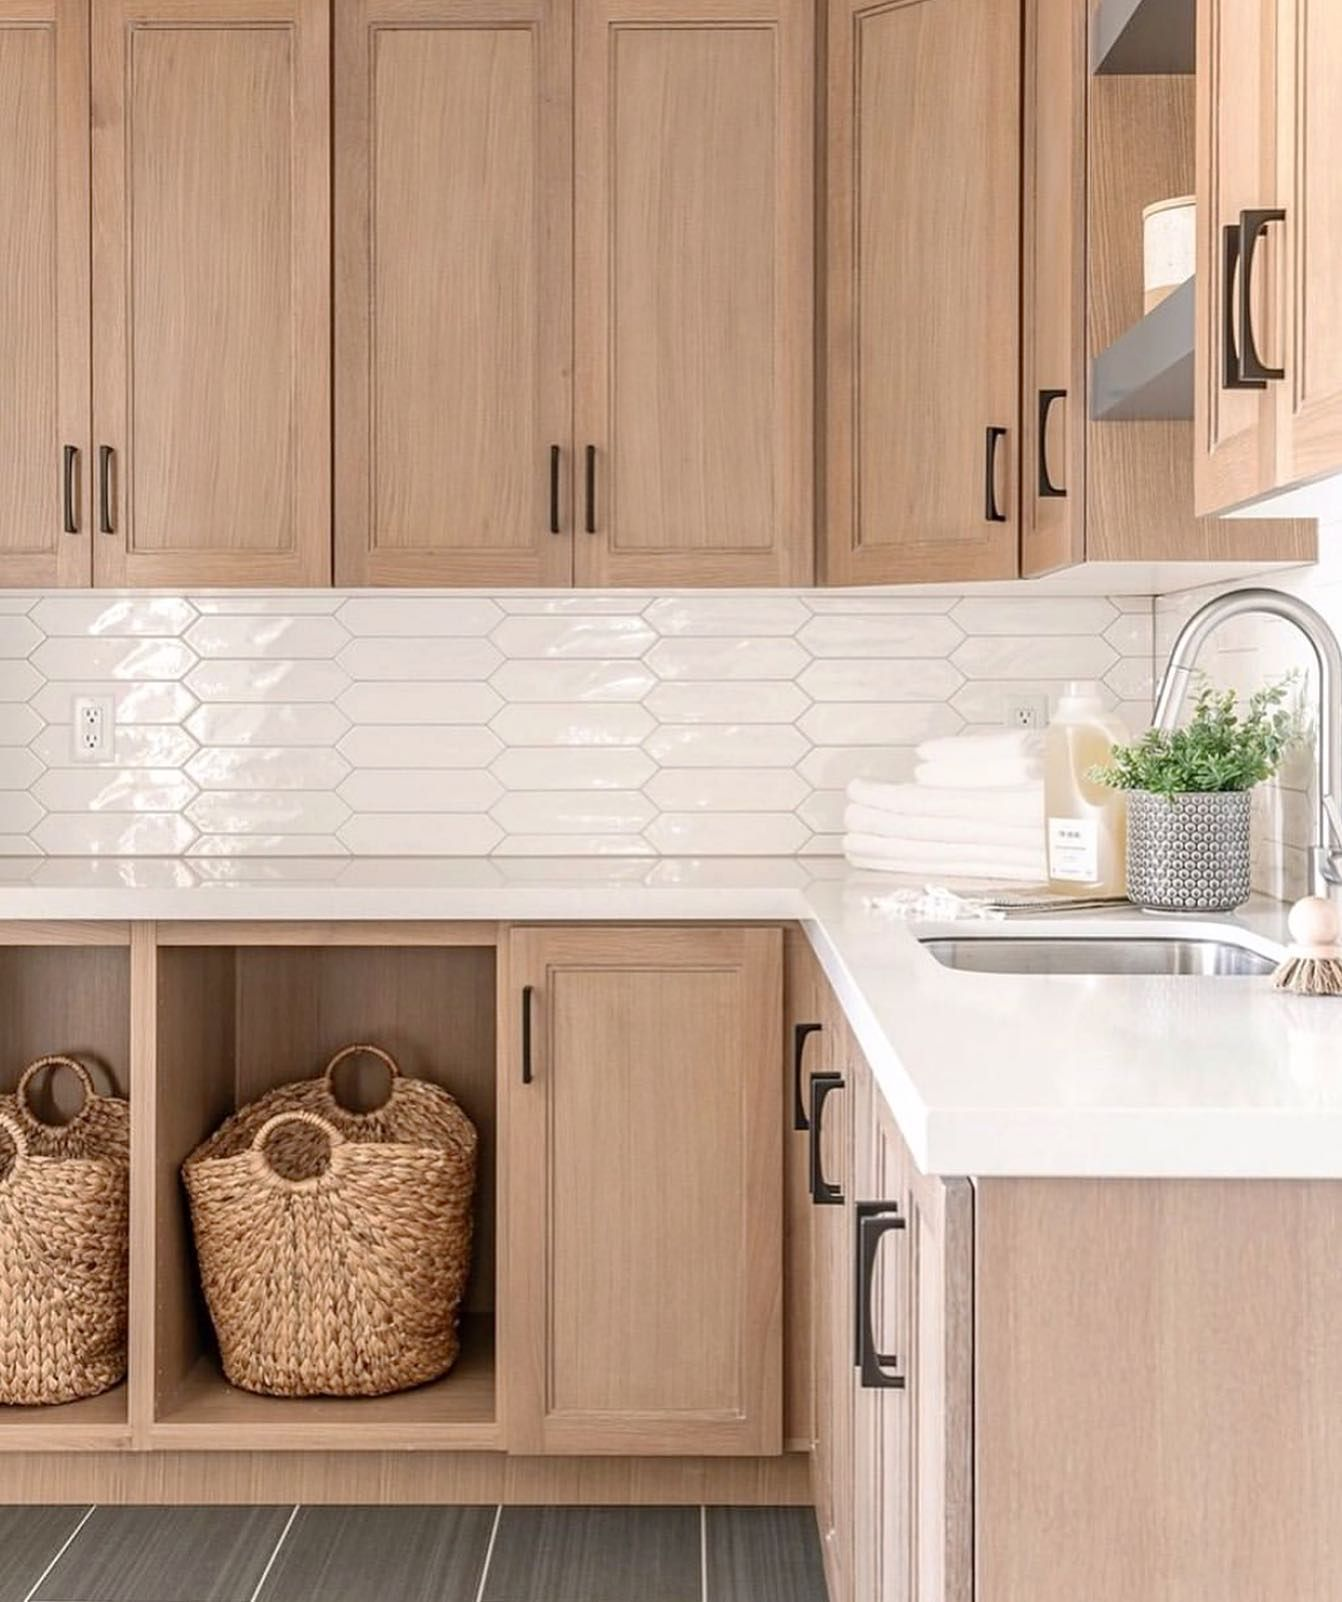 Natural Wood Cabinets Home Kitchens Kitchen Design Oak Kitchen Cabinets